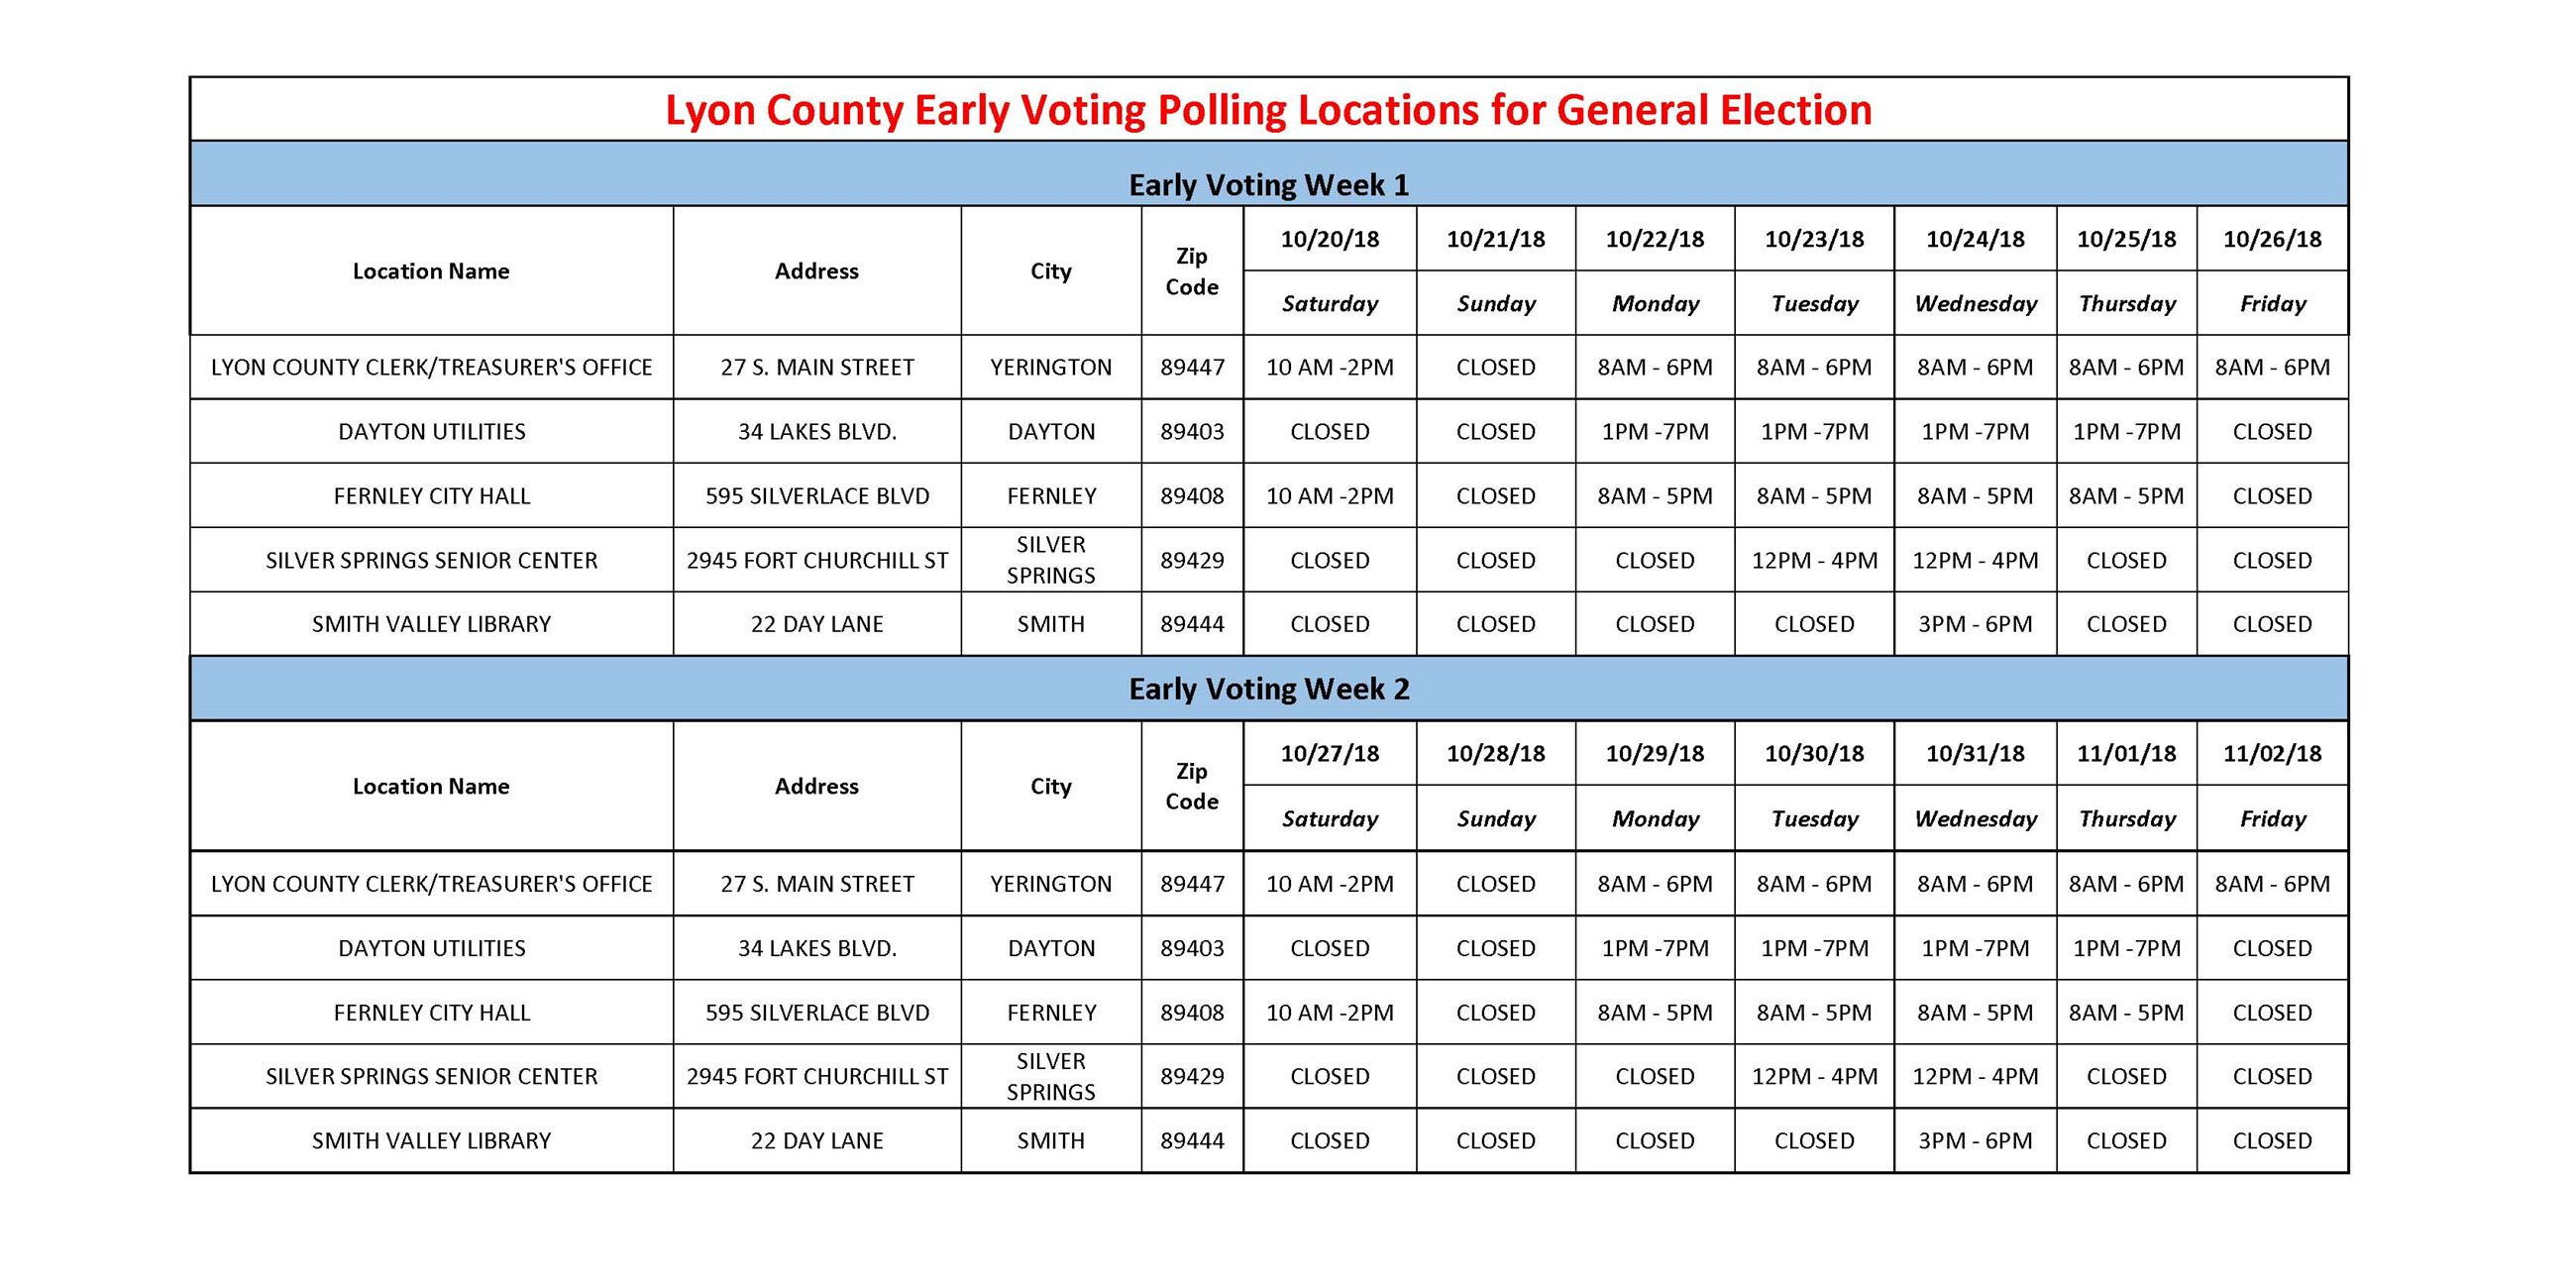 Lyon County Early Voting Polling Locations for General Location